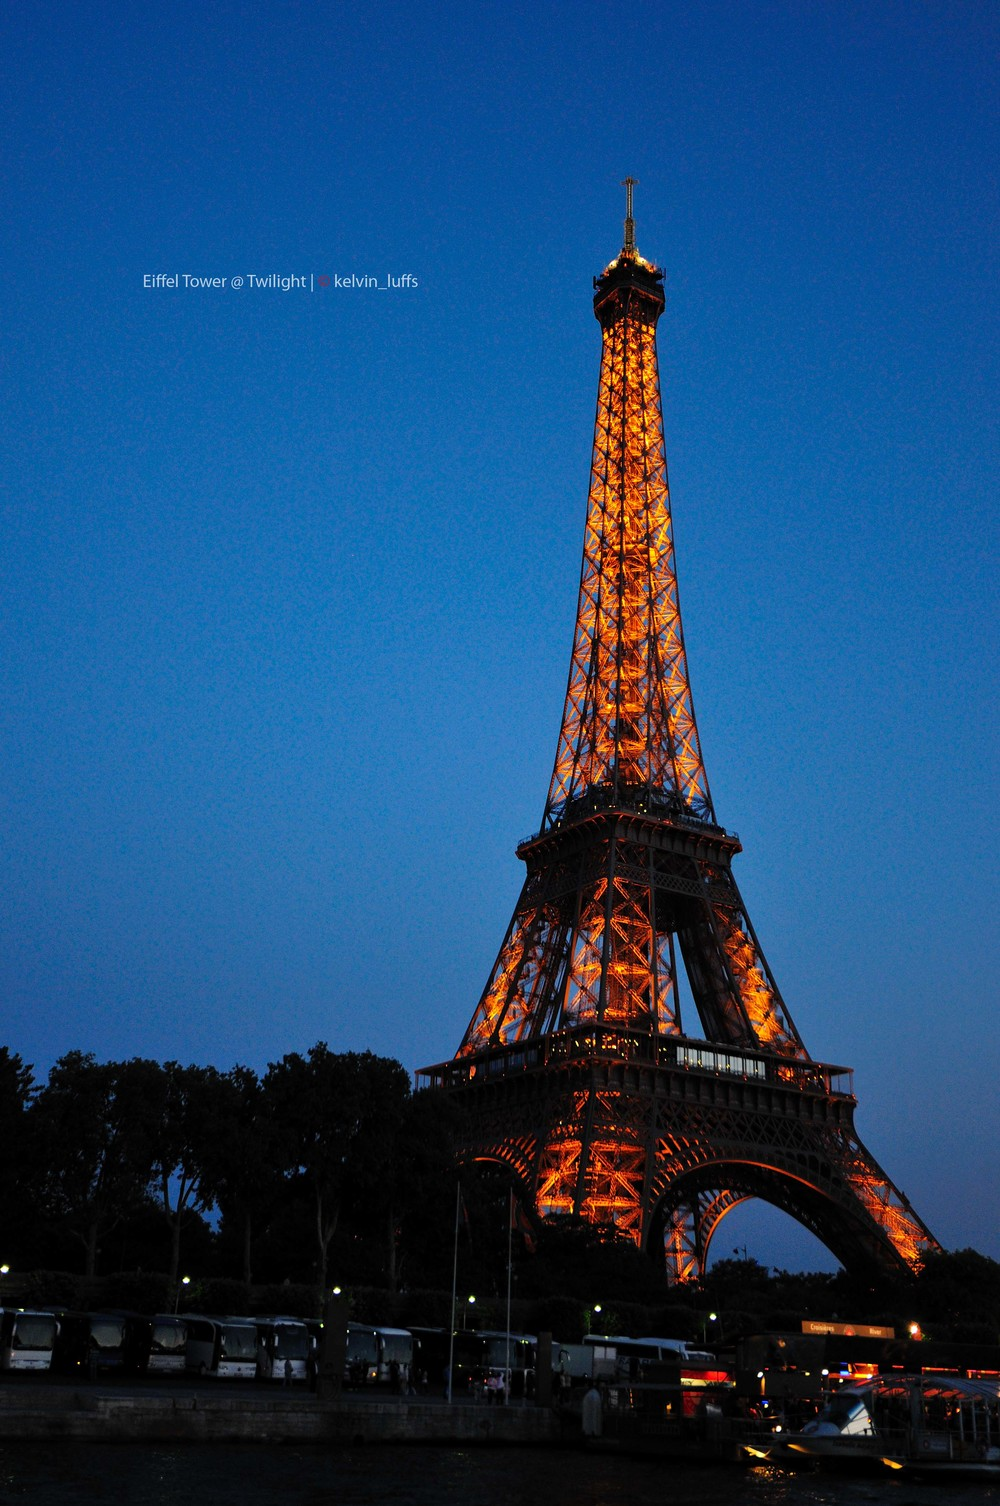 Eiffel Tower@ Twilight.jpg